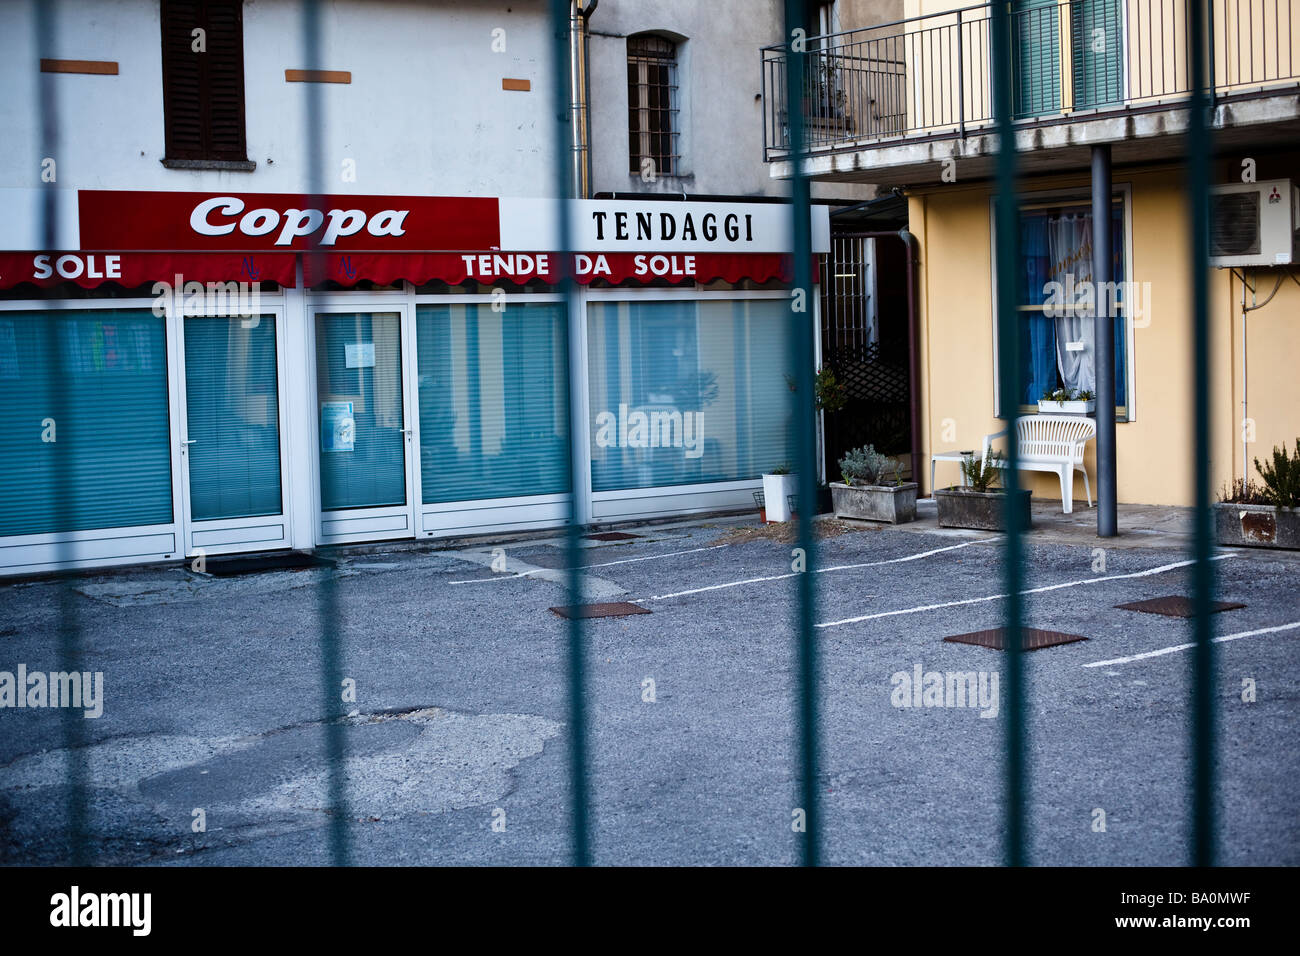 Grid in front a closed Coppa Branch in Porlezza, Italy - Stock Image